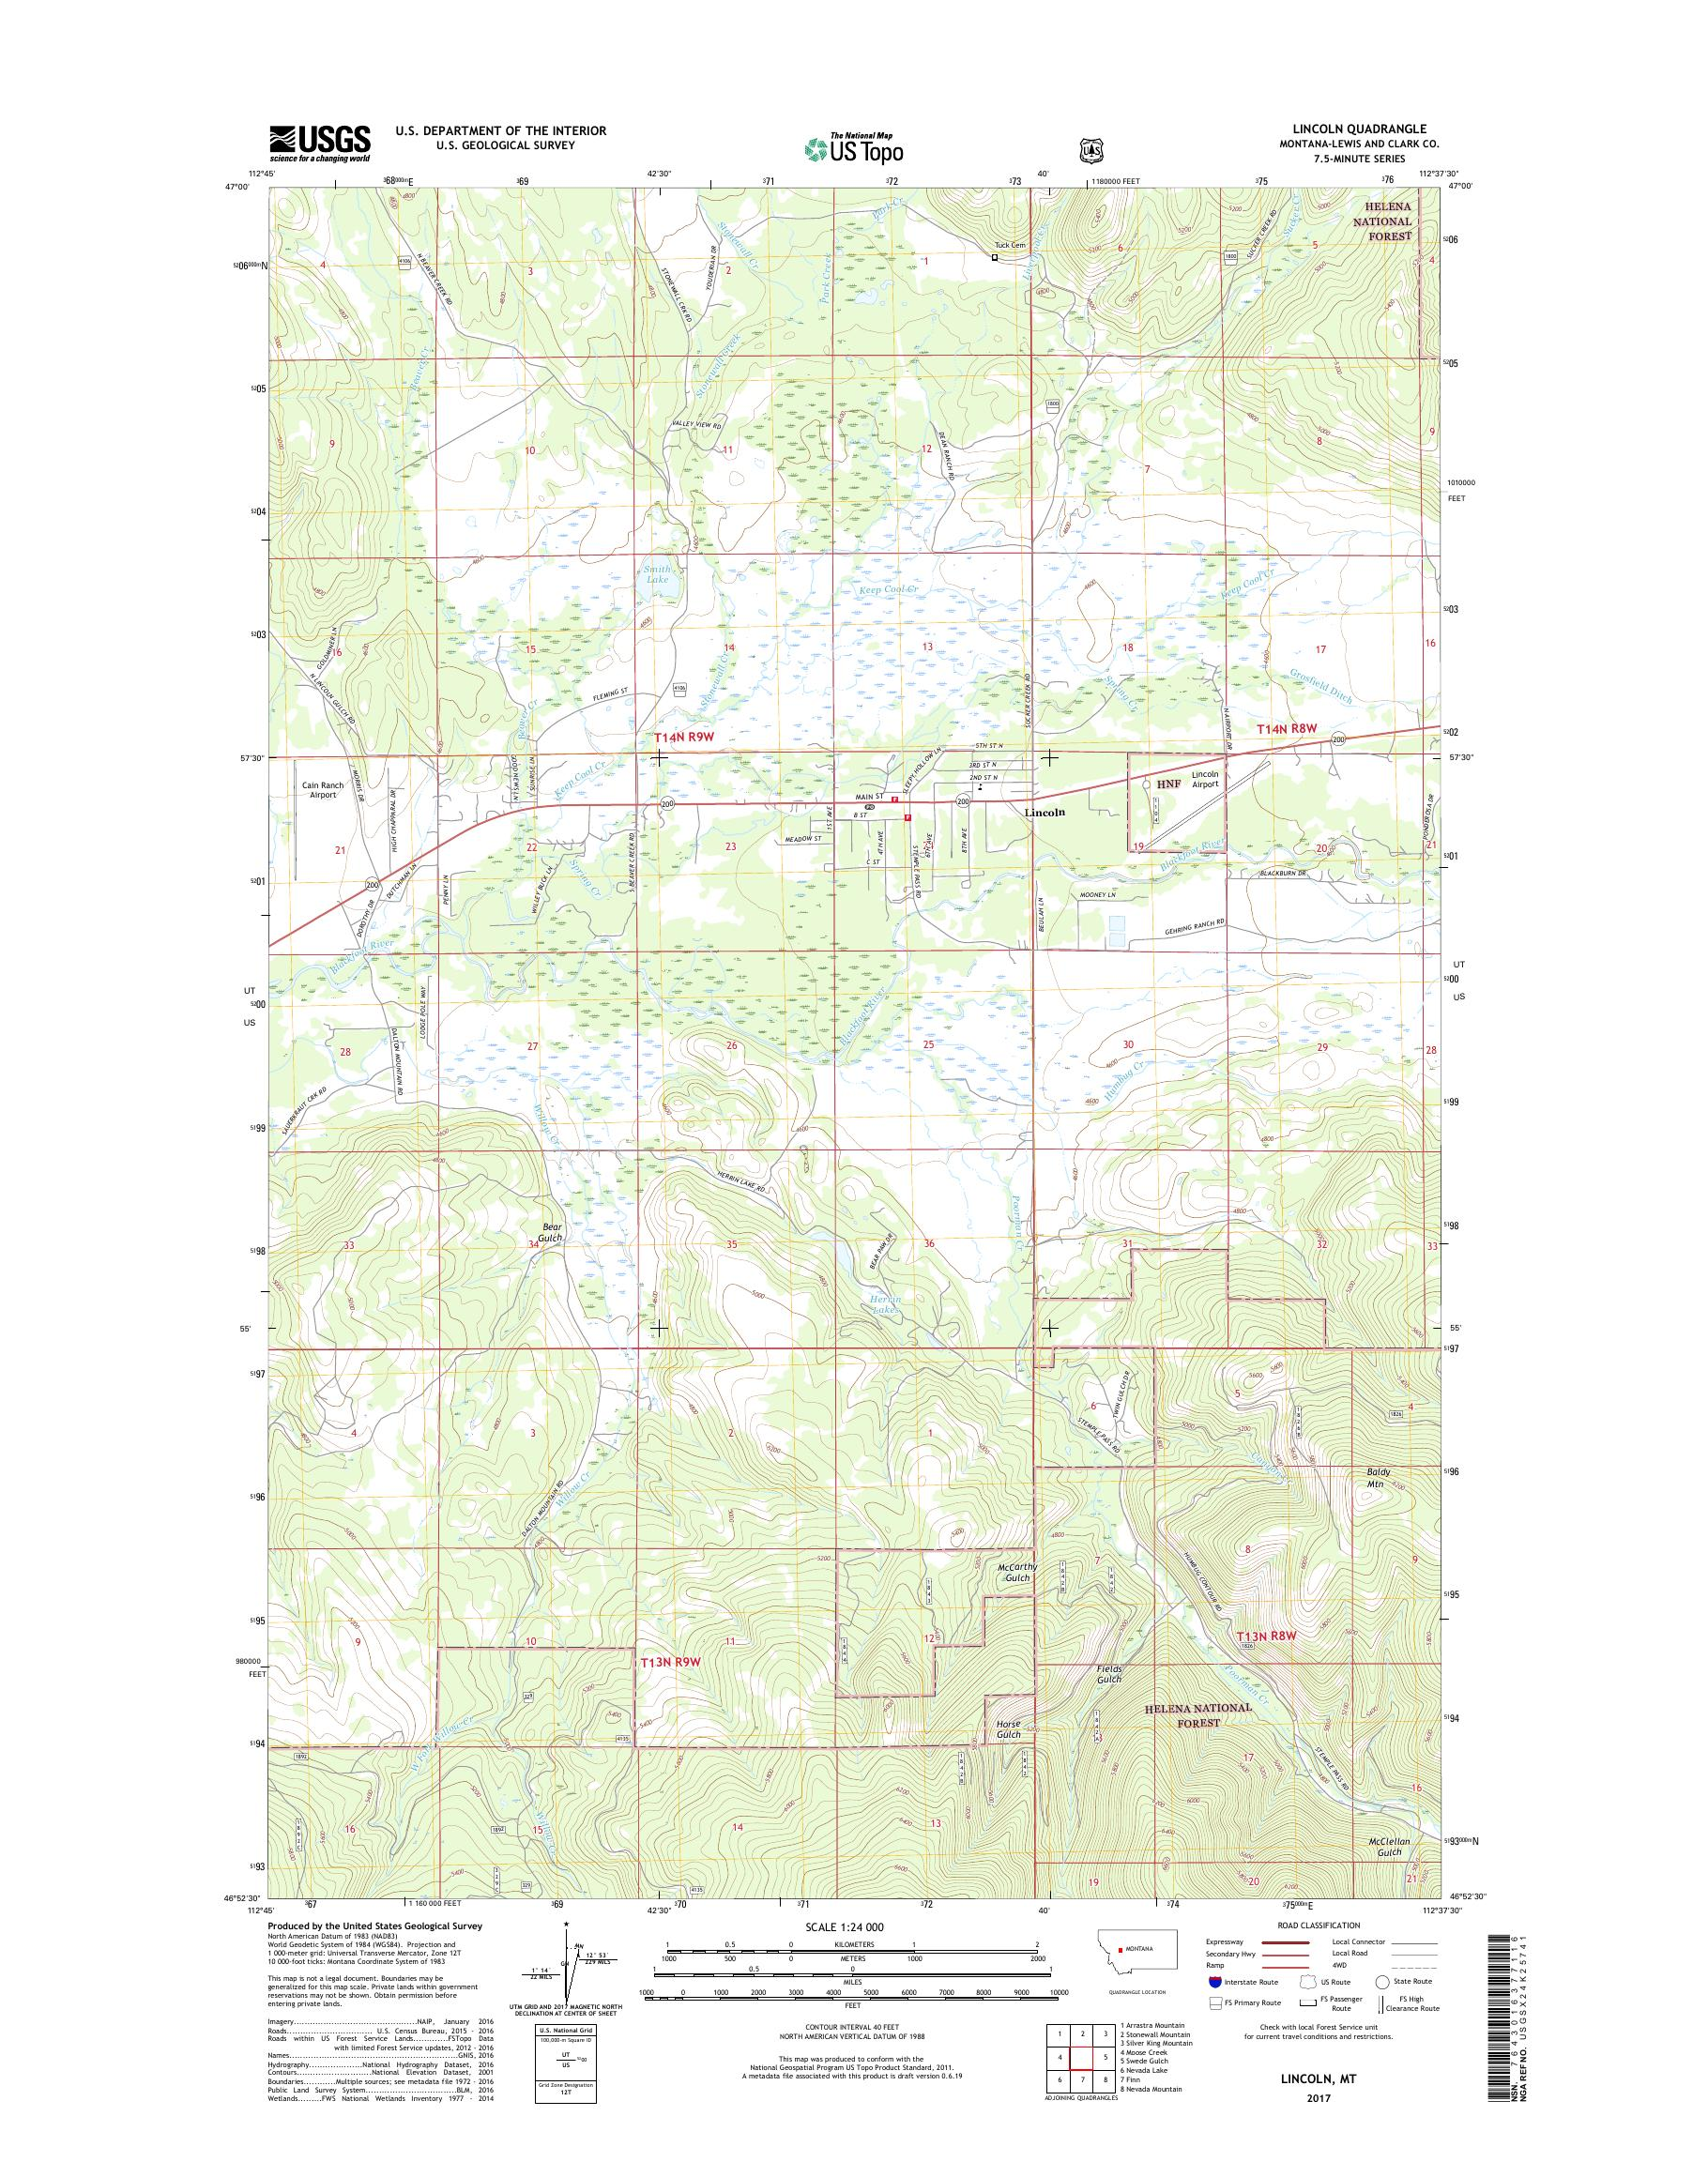 MyTopo Lincoln, Montana USGS Quad Topo Map on map of lavallette new jersey, map of linthicum maryland, map of leetonia ohio, map of ledyard connecticut, map of lincoln nebraska, map of lebanon connecticut, map of lincoln ontario, map of monticello iowa, map of lititz pennsylvania,